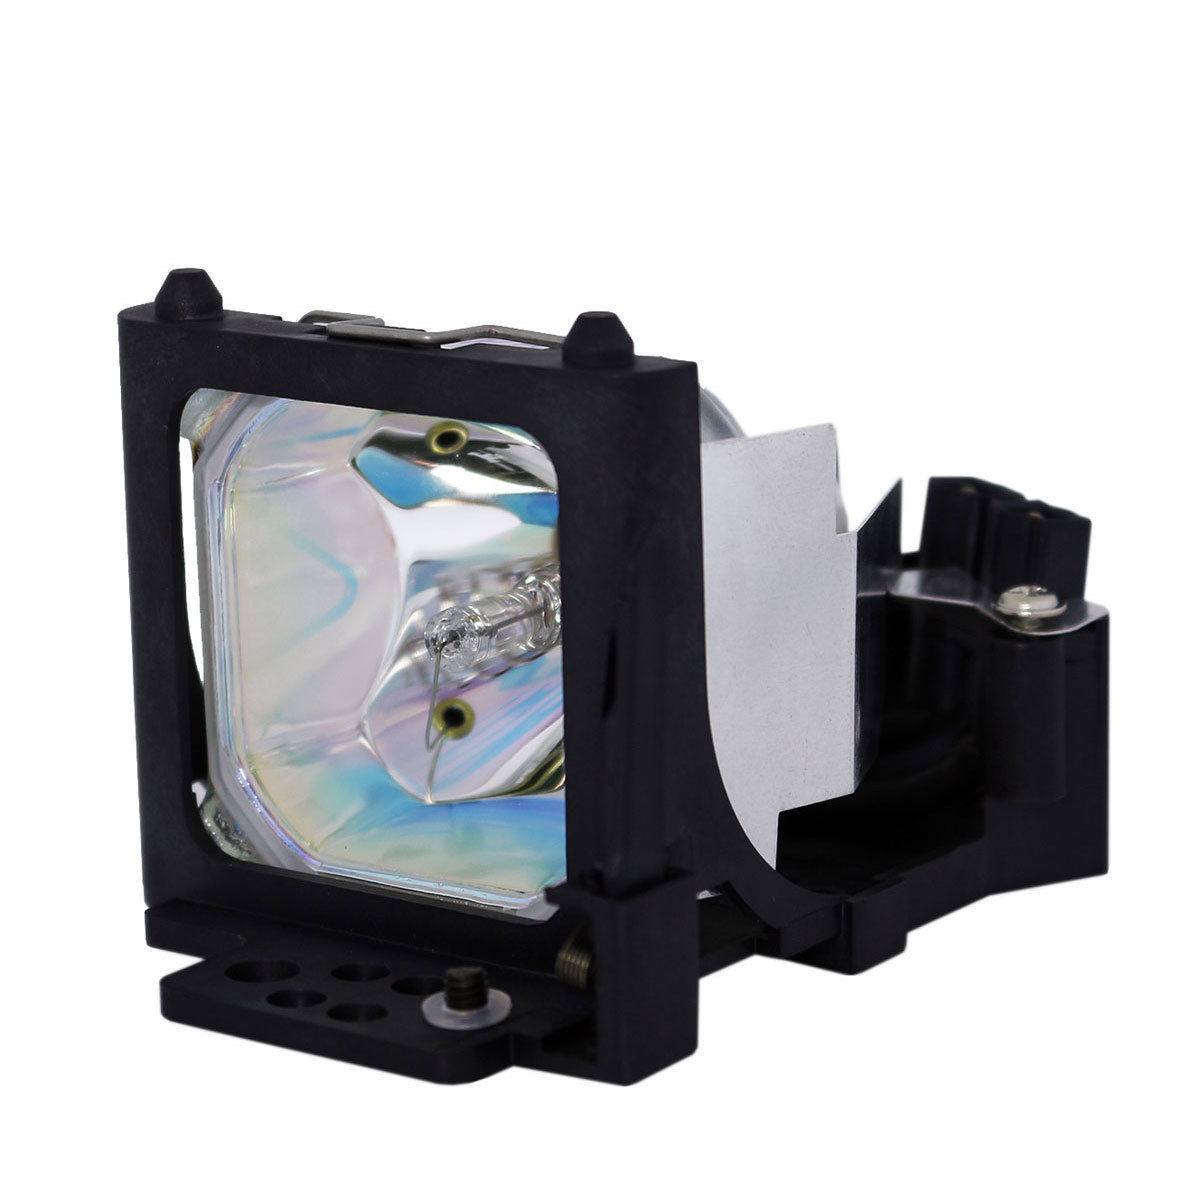 Projector Lamp Bulb DT00461 DT-00461 for HITACHI CP-X275 CP-X275A CP-X275W CP-X327 ED-X3250 ED-X3270 ED-X3270A With Housing dt00461 dt00511 dt00521 dt00401